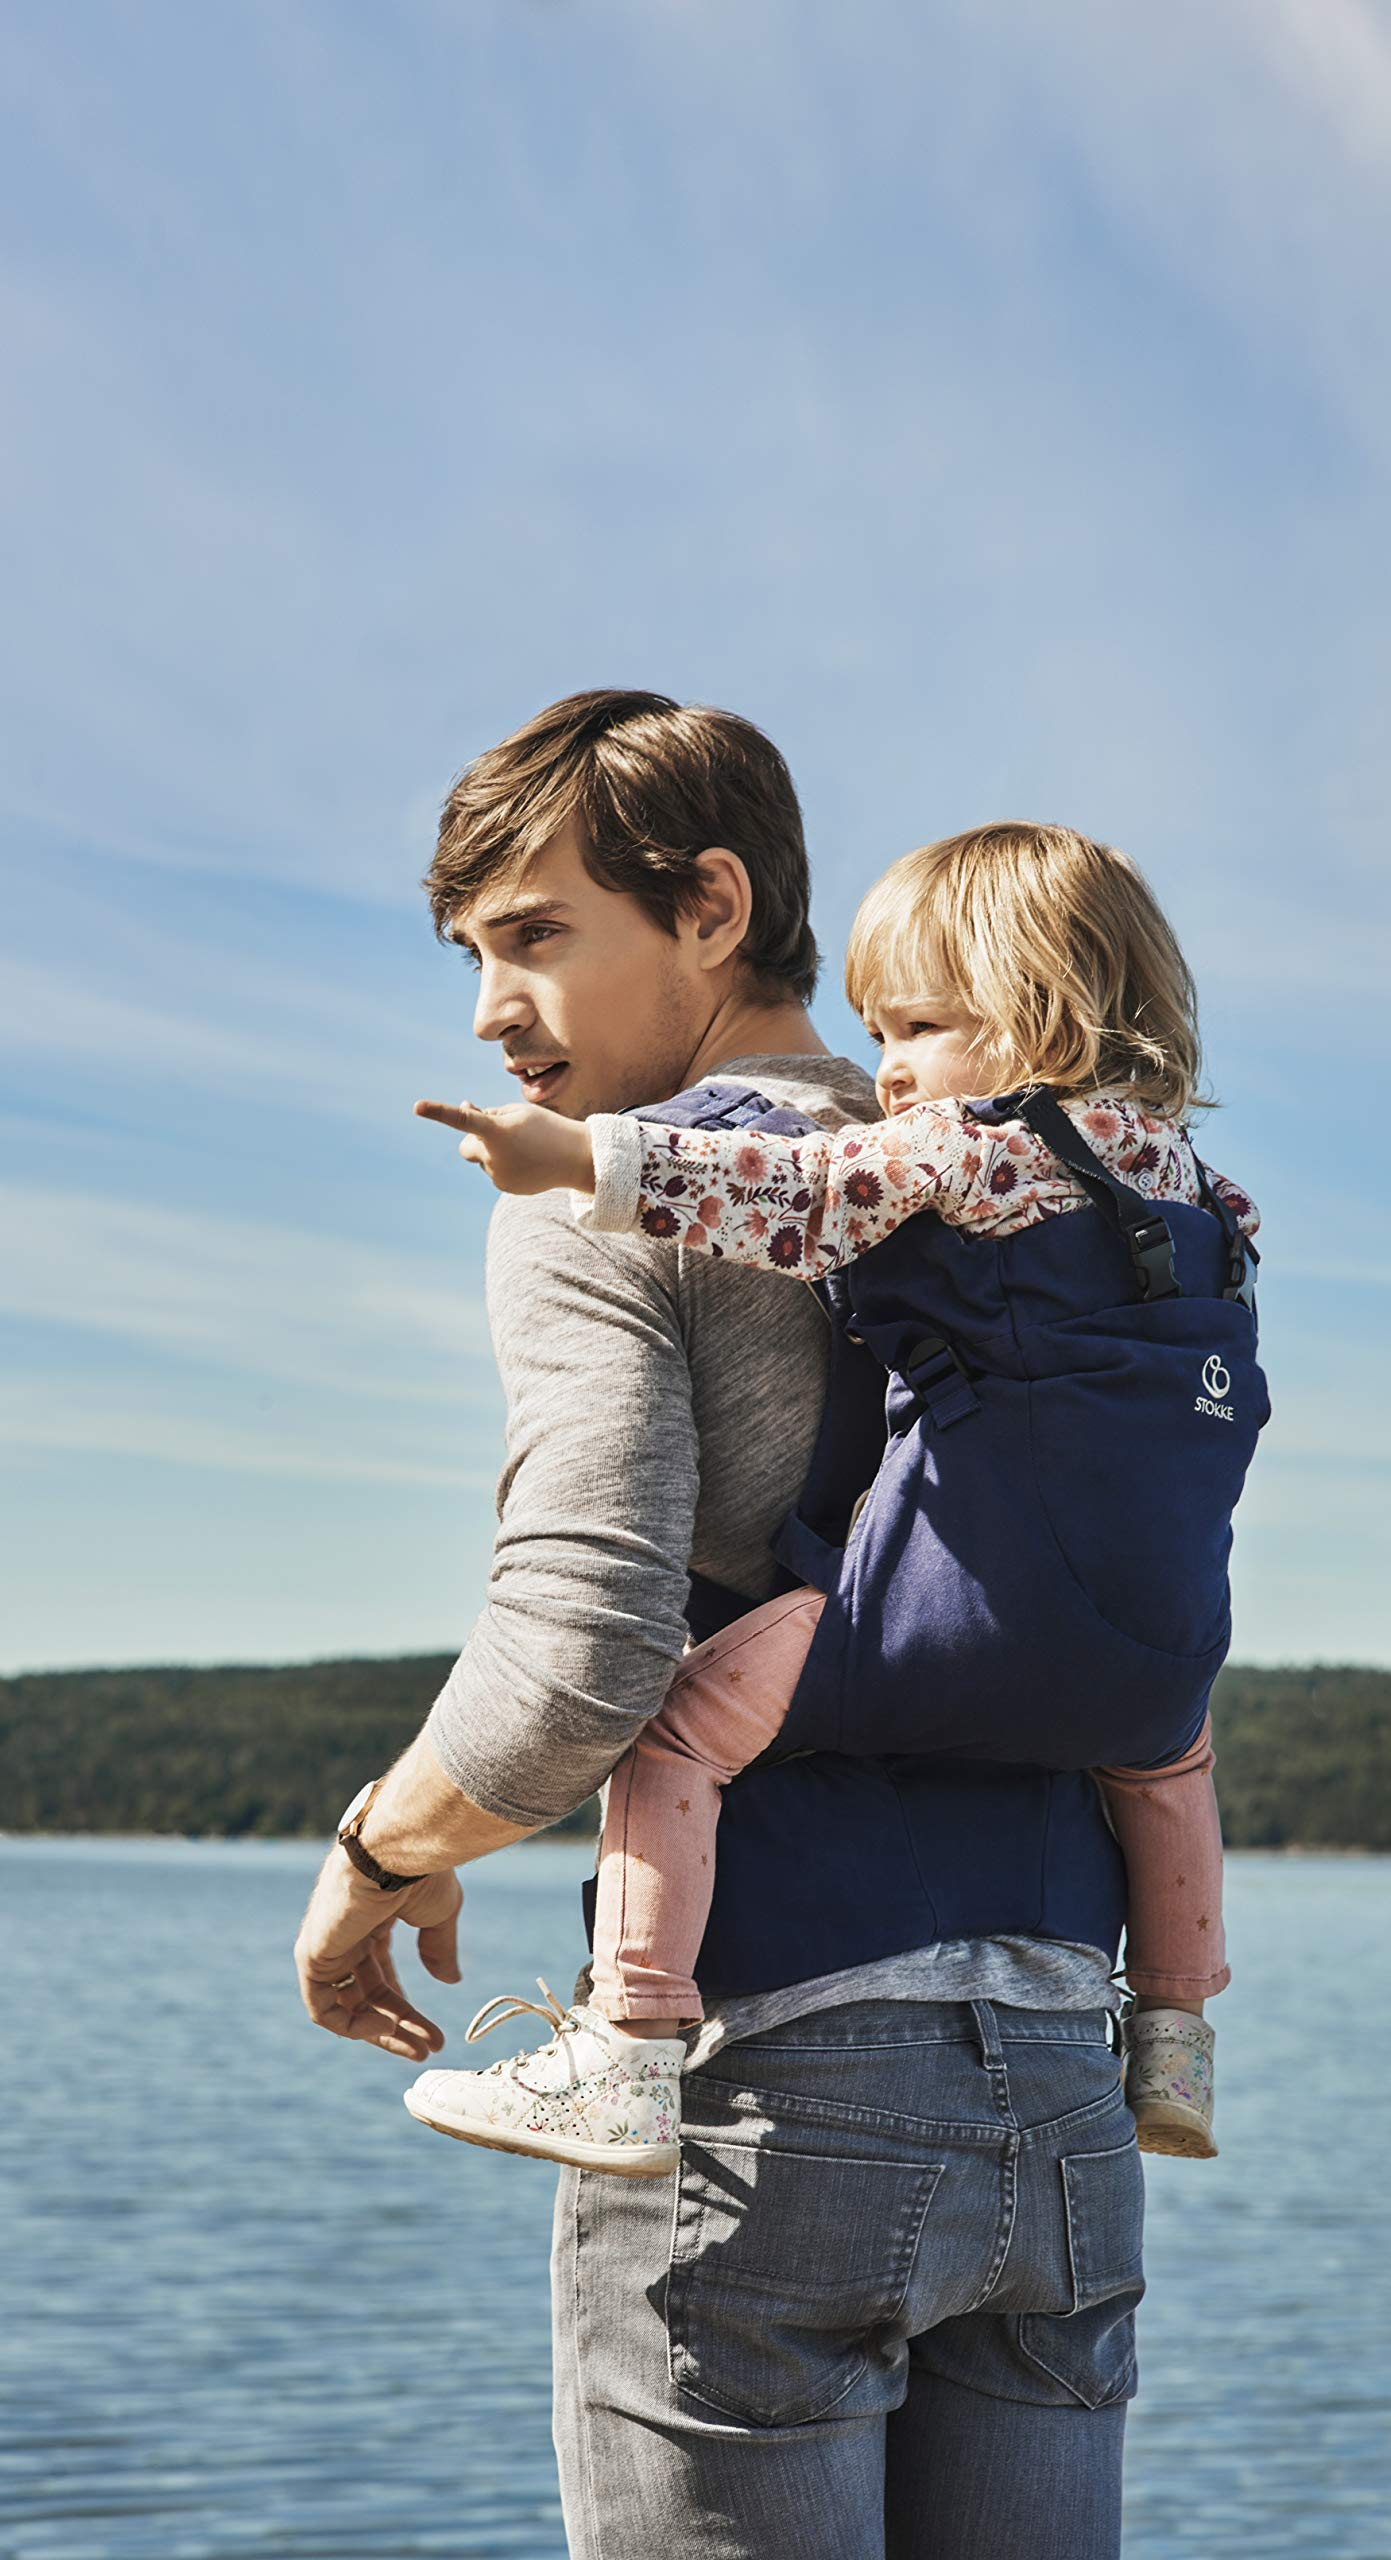 Stokke MyCarrier Back Carrier - Baby Carrier for Toddlers - Accessories for 3 in 1 Organic Cotton Carrying System - Ultralight & Ergonomic - Color: Coral Mesh Stokke With the MyCarrier wrap newborns feel sheltered when being close to the parents. From 9 months onwards the world can be discovered comfortably with the supplementary back carrier Research confirms that babies are much calmer and cry less when they feel the body heat and movements of their parents - the STOKKE MyCarrier provides this safe and secure feeling The 3 in 1 baby carrier allows three different carrying positions - on the stomach, either facing the parent or outwards and on the back with the back carrier suitable from 9 months 5